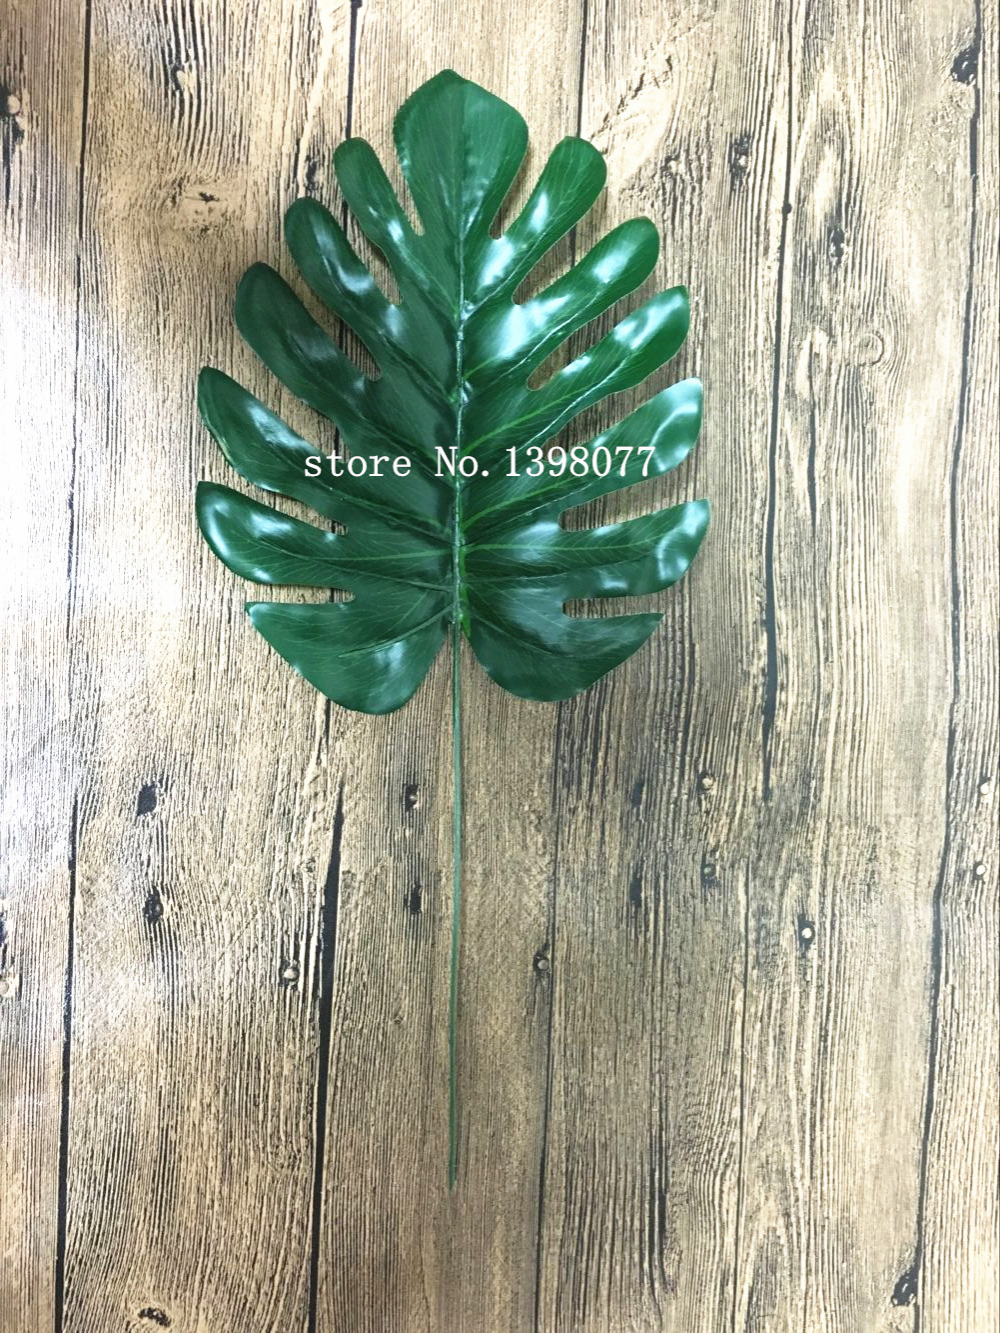 Artificial Monstera Leaf Flower Arrangement DIY Source